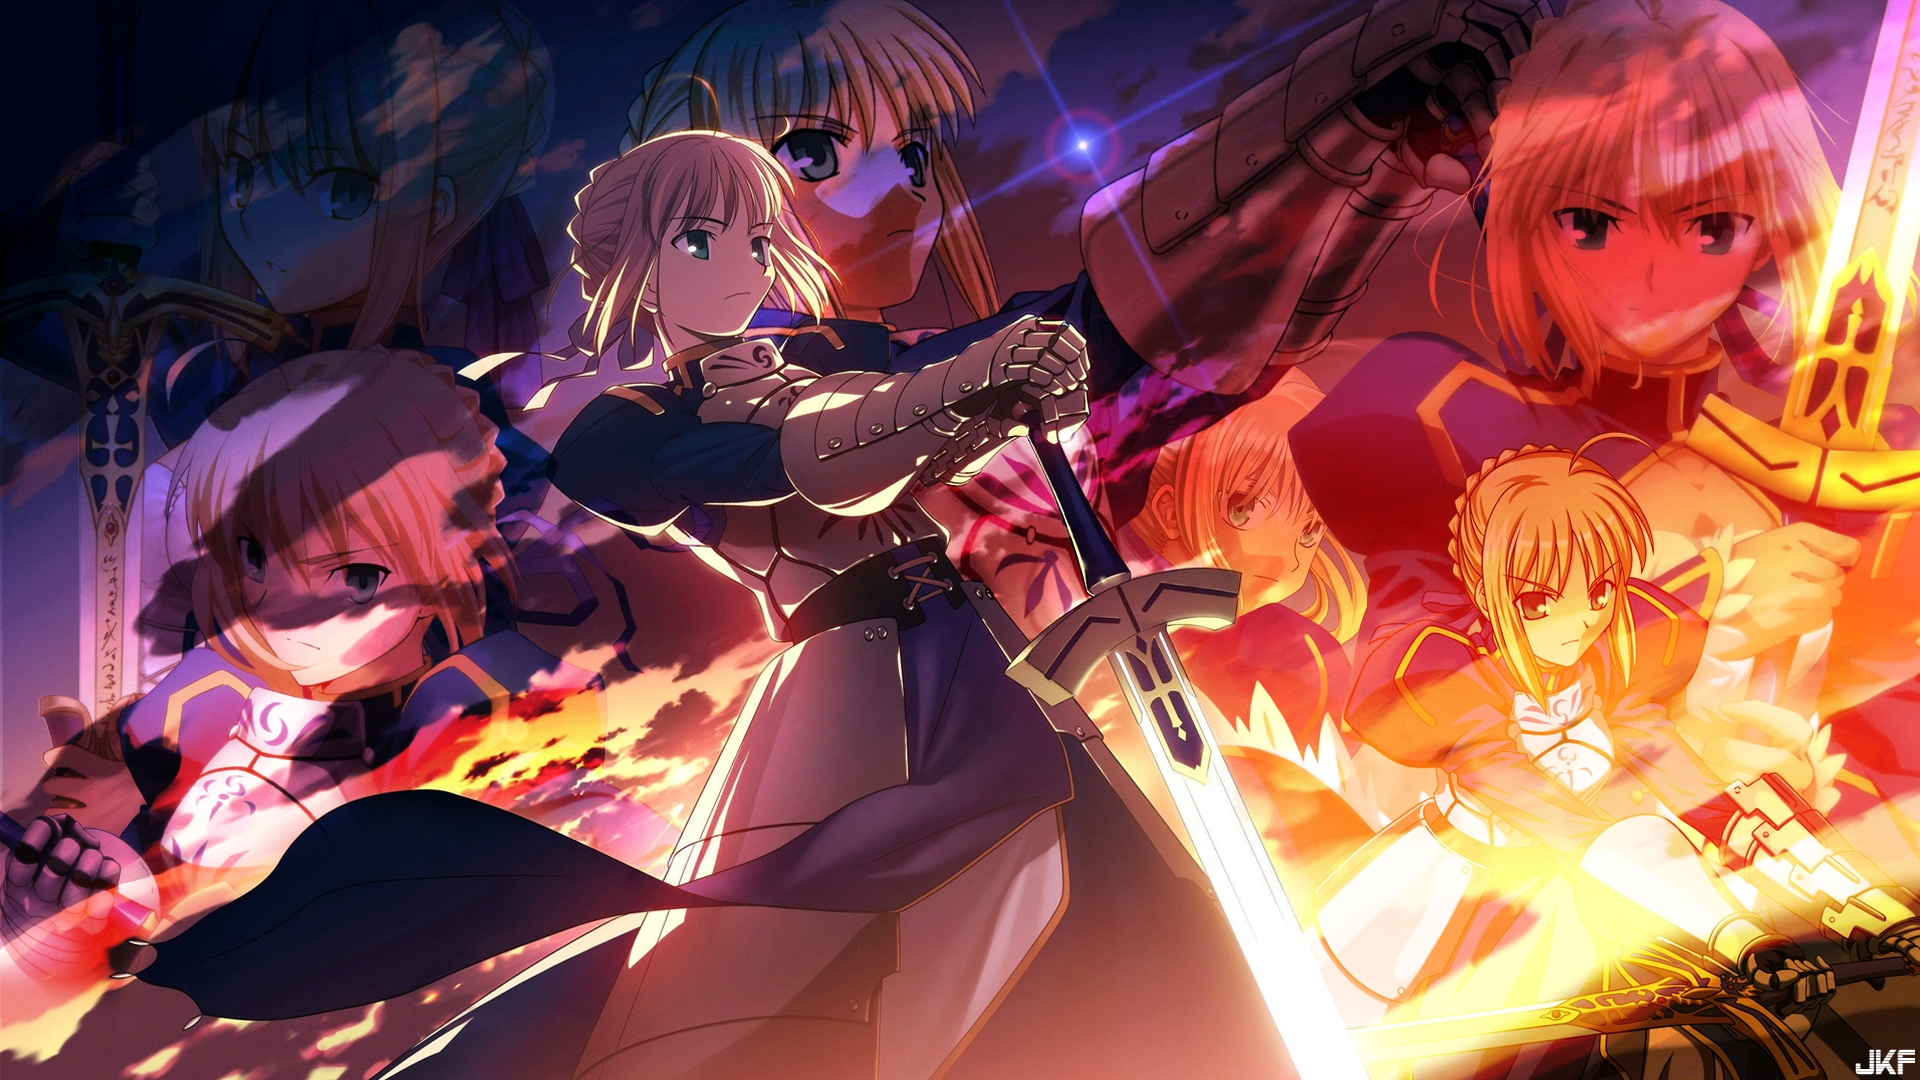 saber_wallpaper_by_dinocojv-d8cthlp.jpg